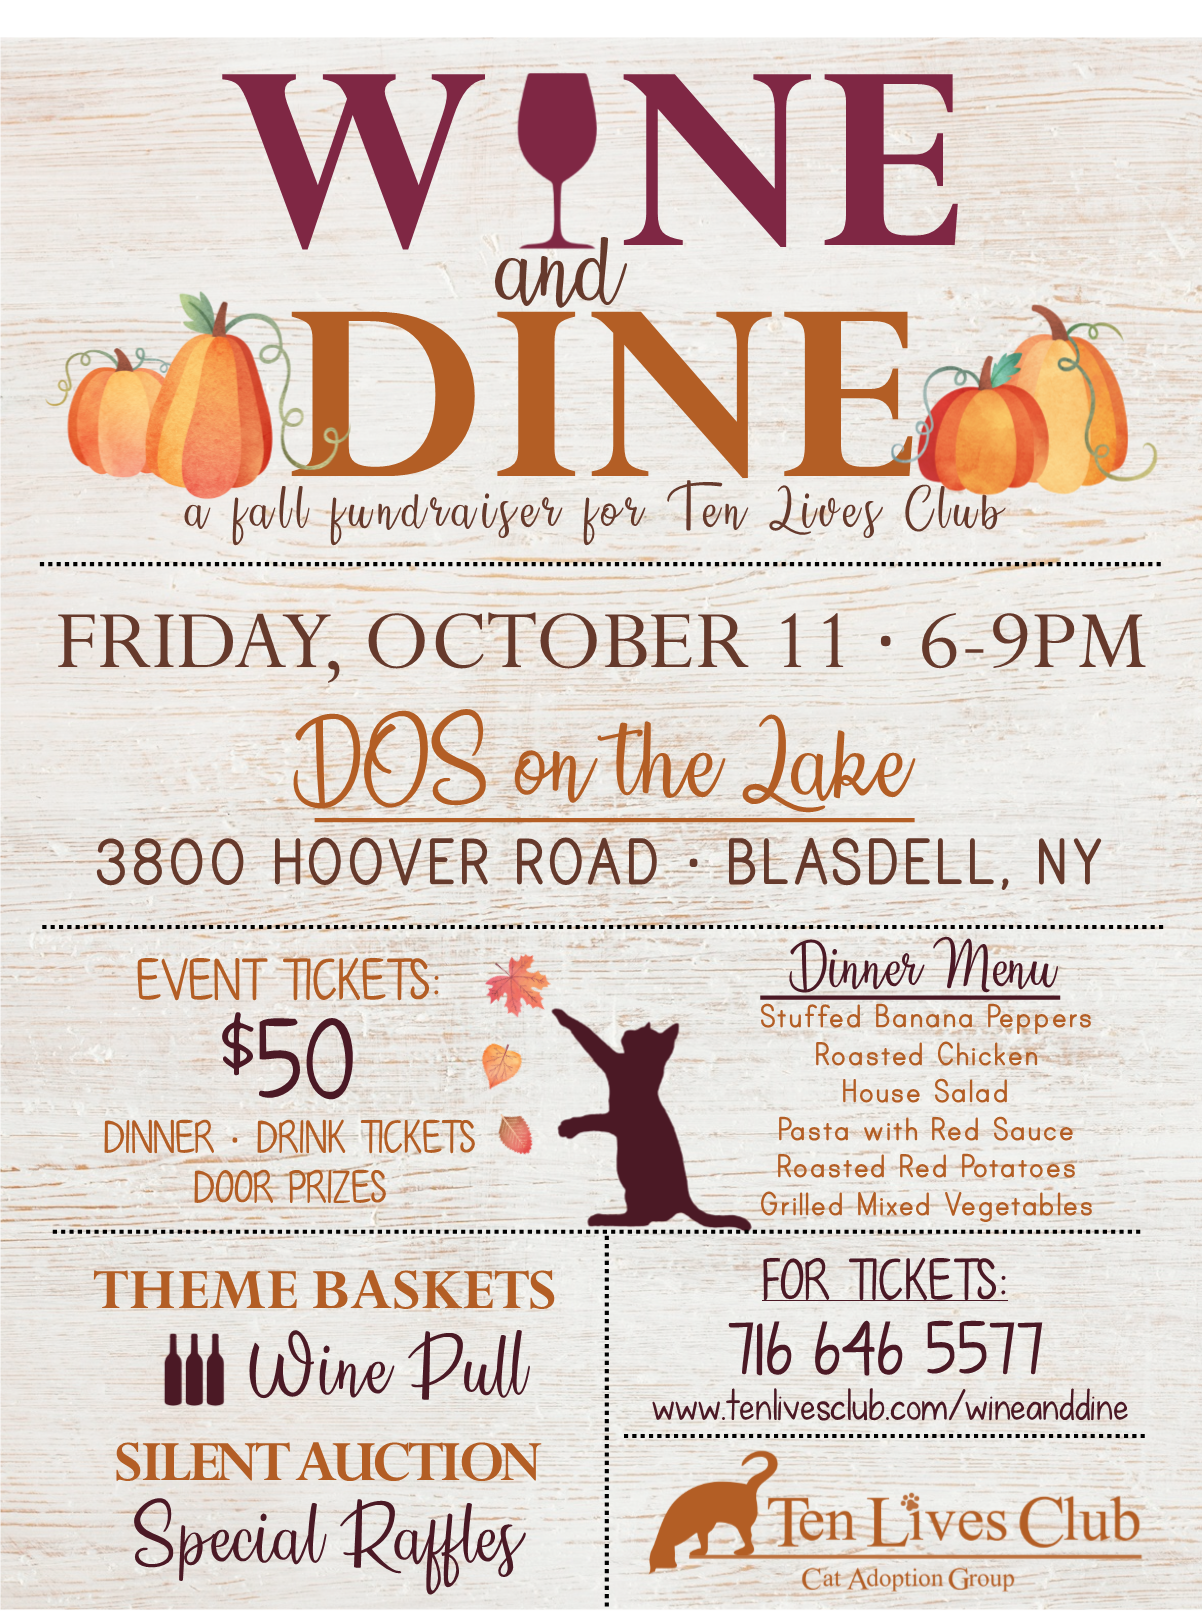 Wine and Dine Flyer.png